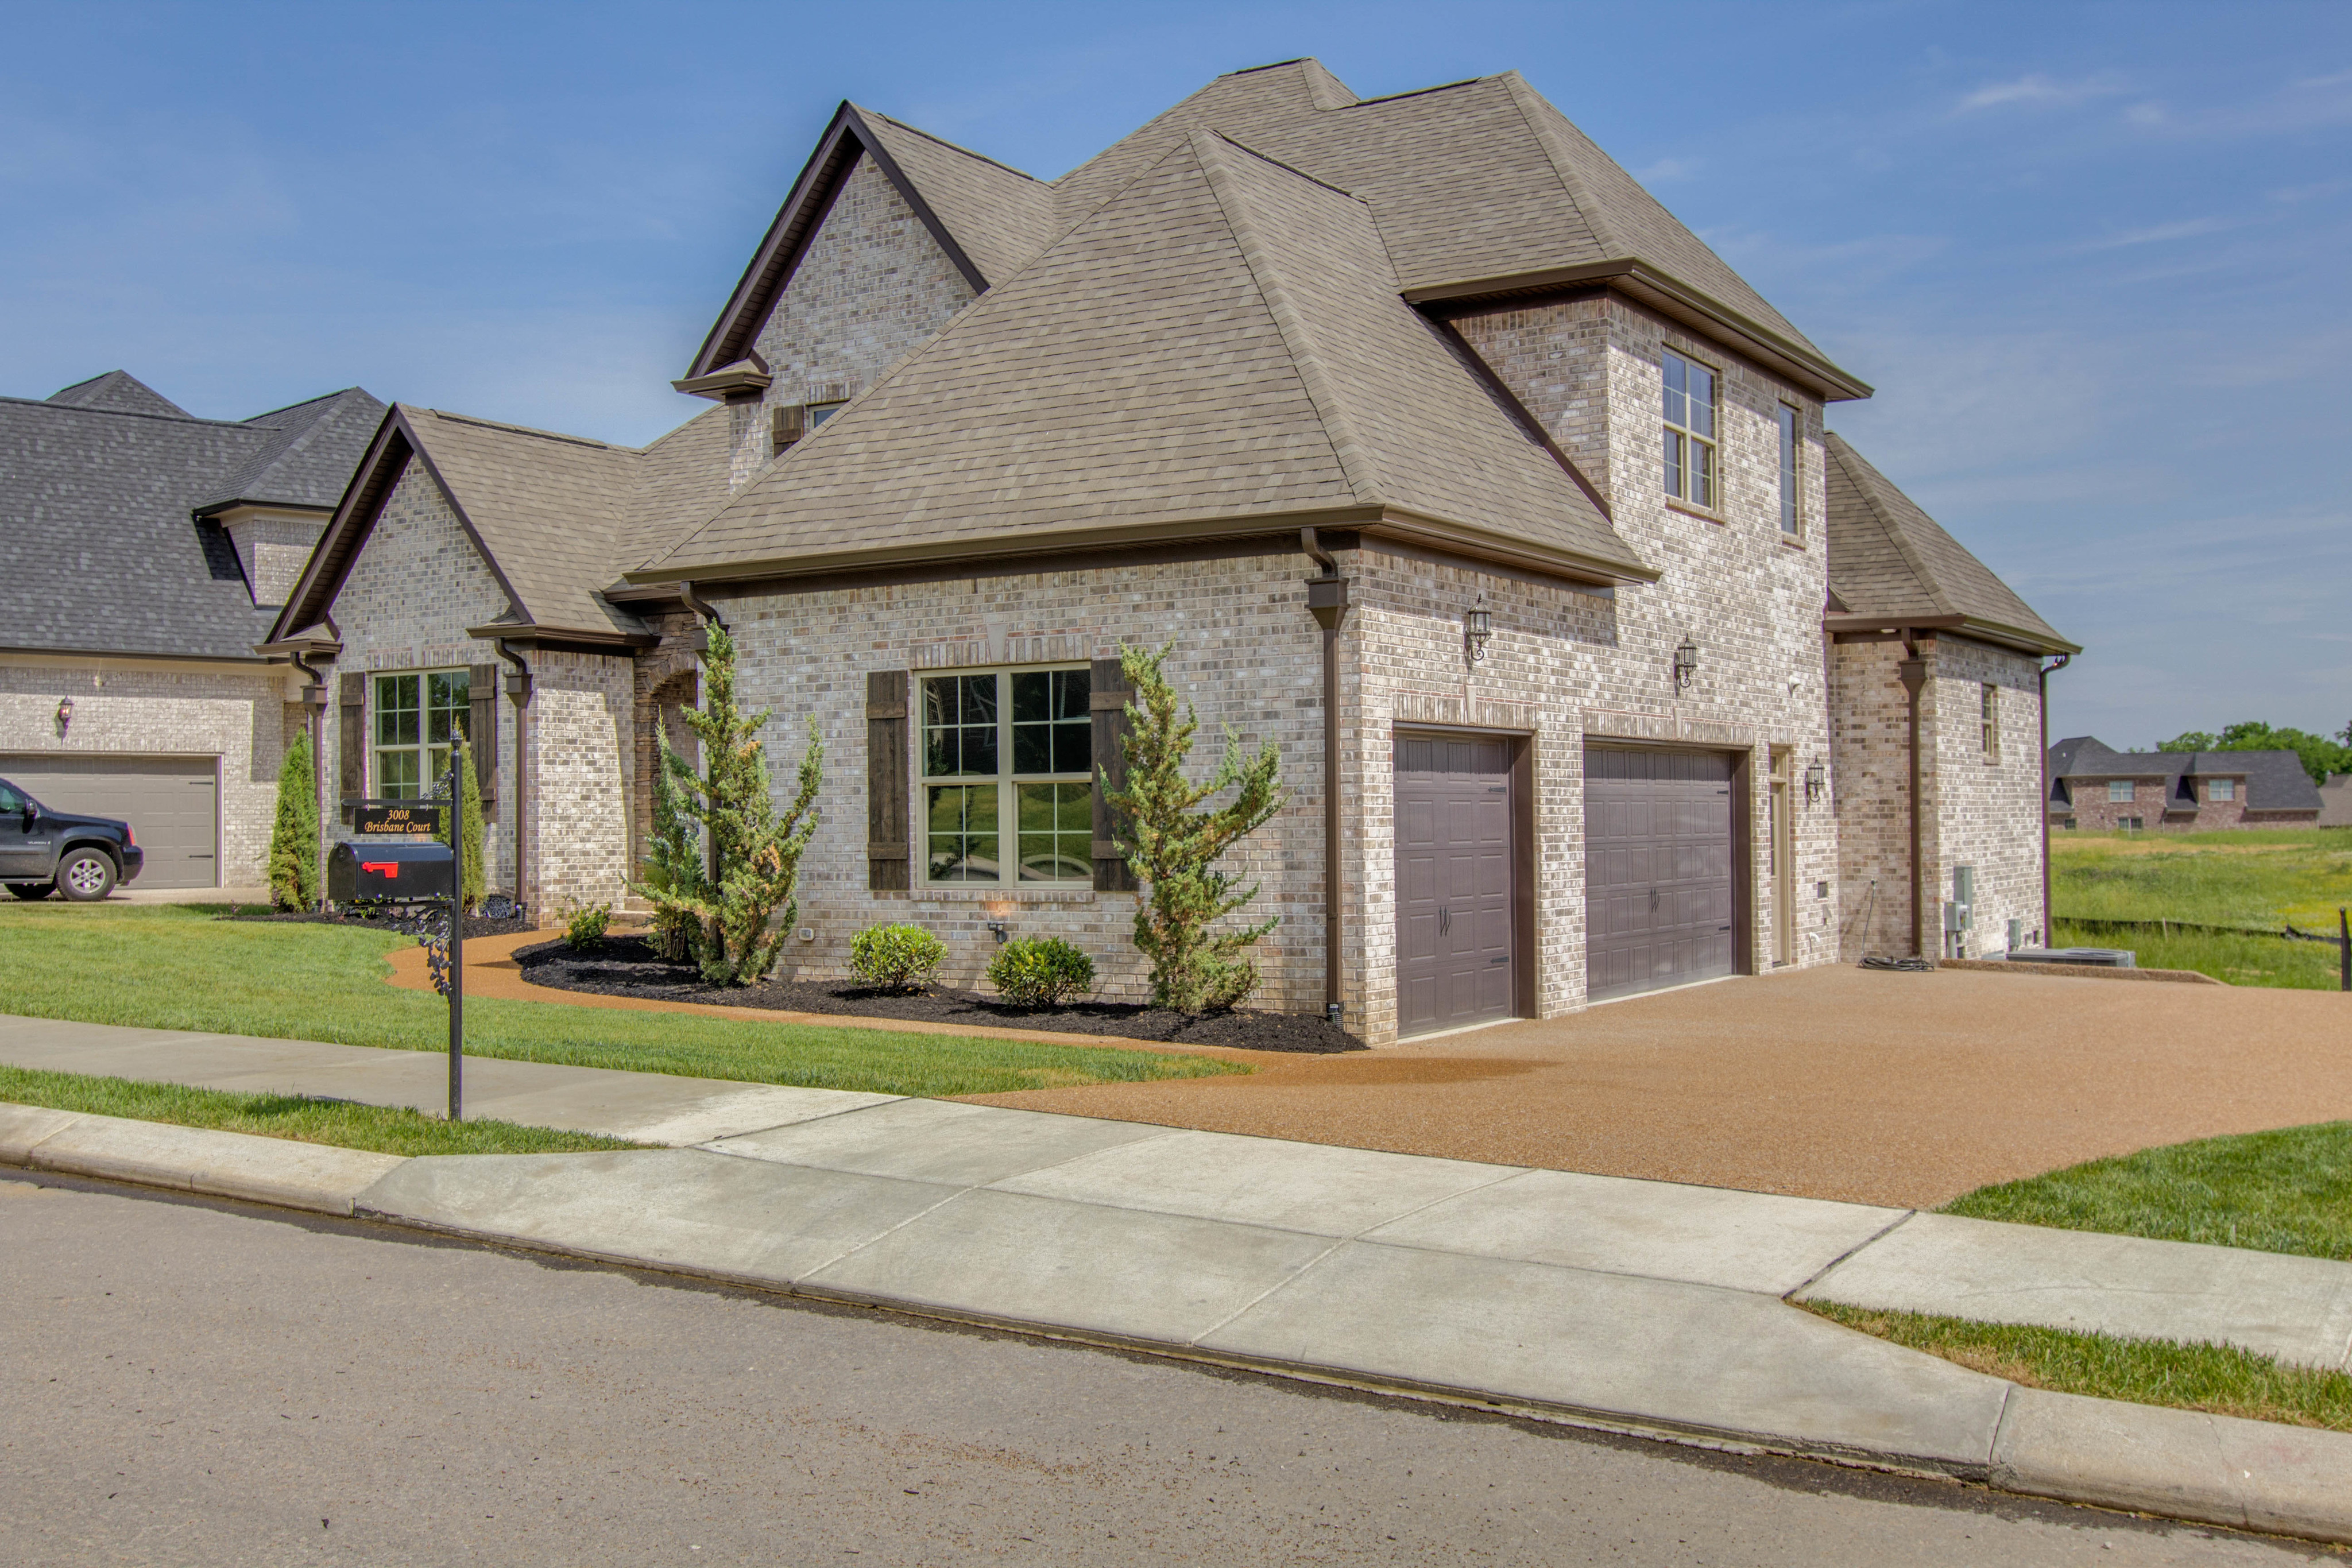 Lot 329 CG front garage side